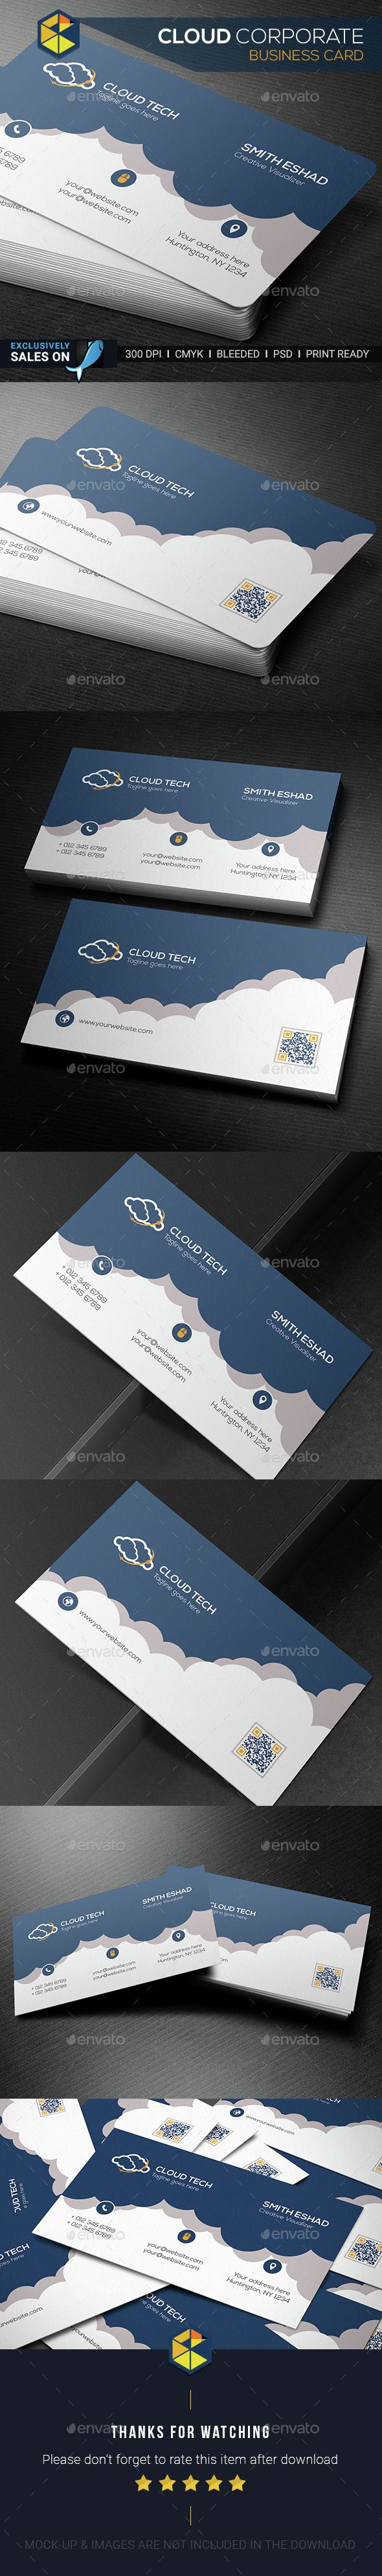 236 best Business Card Design images on Pinterest